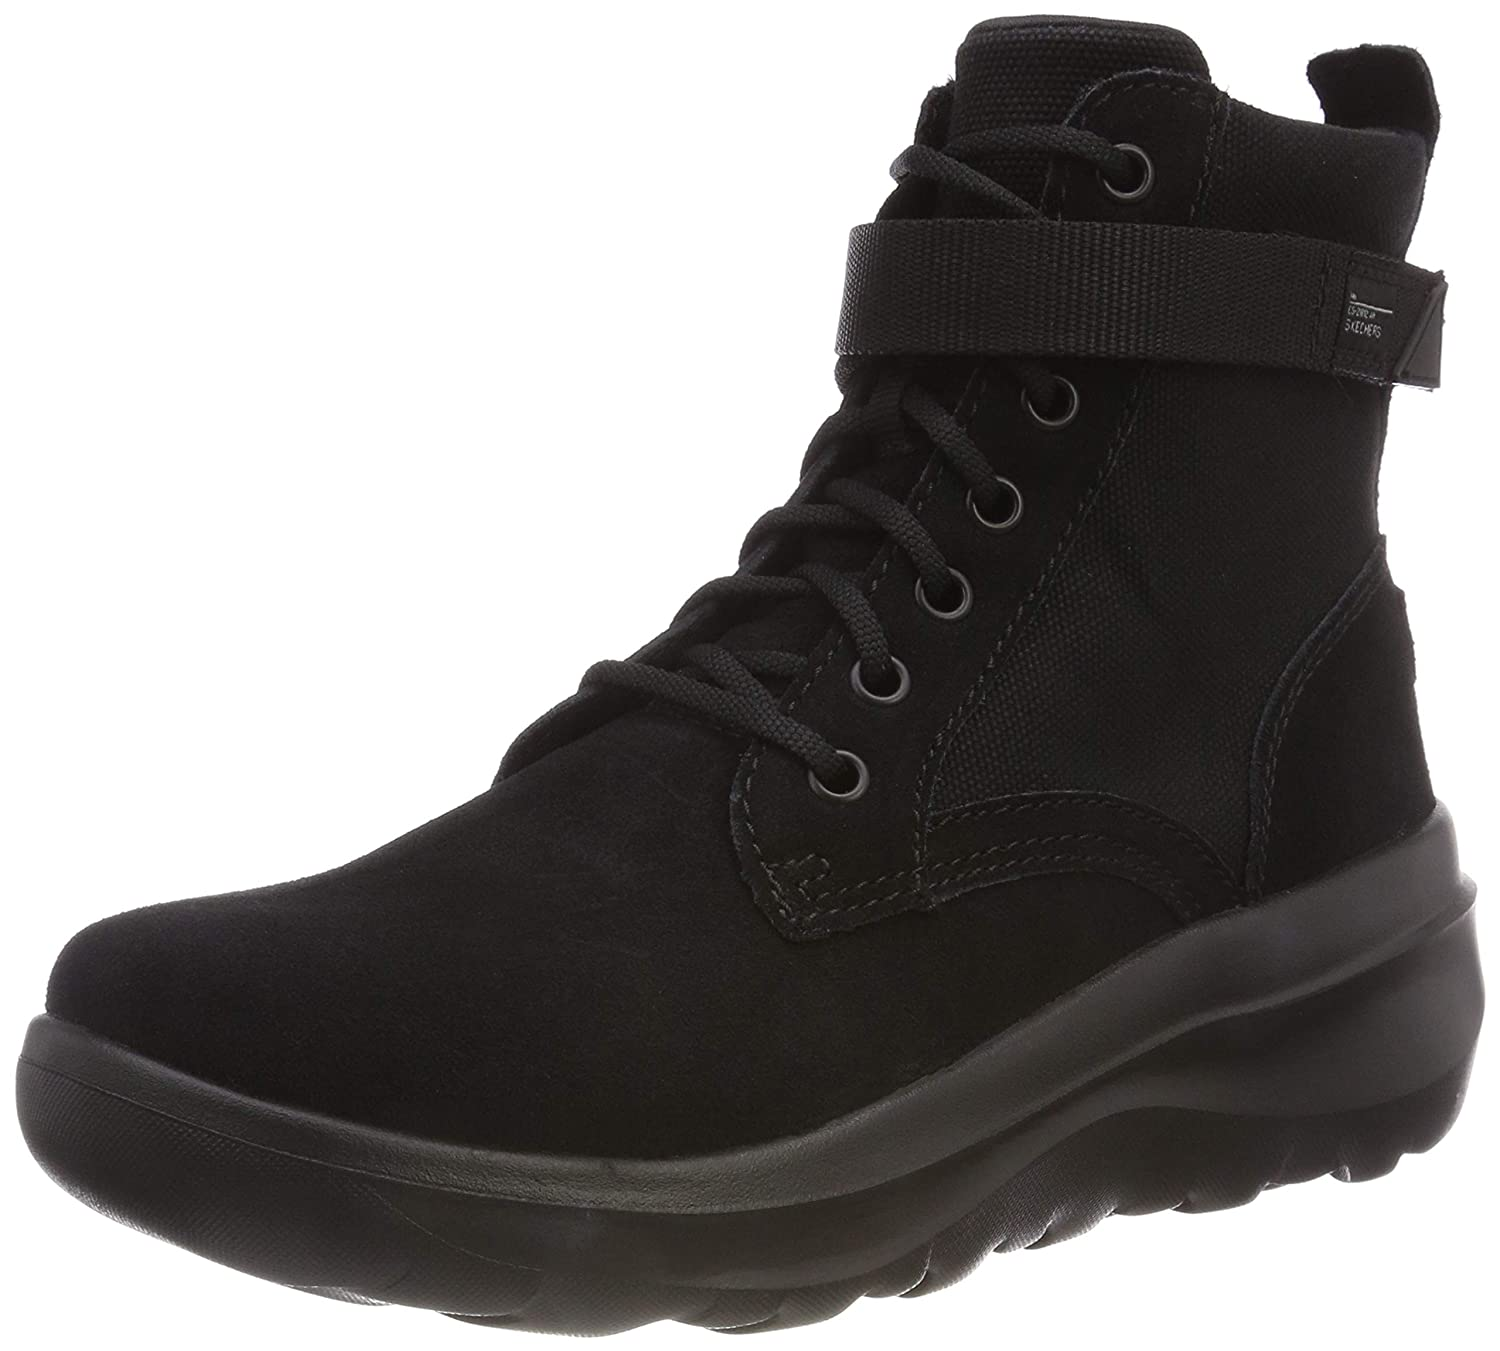 Skechers Damen Skyhigh Ultra Kurzschaft Stiefel